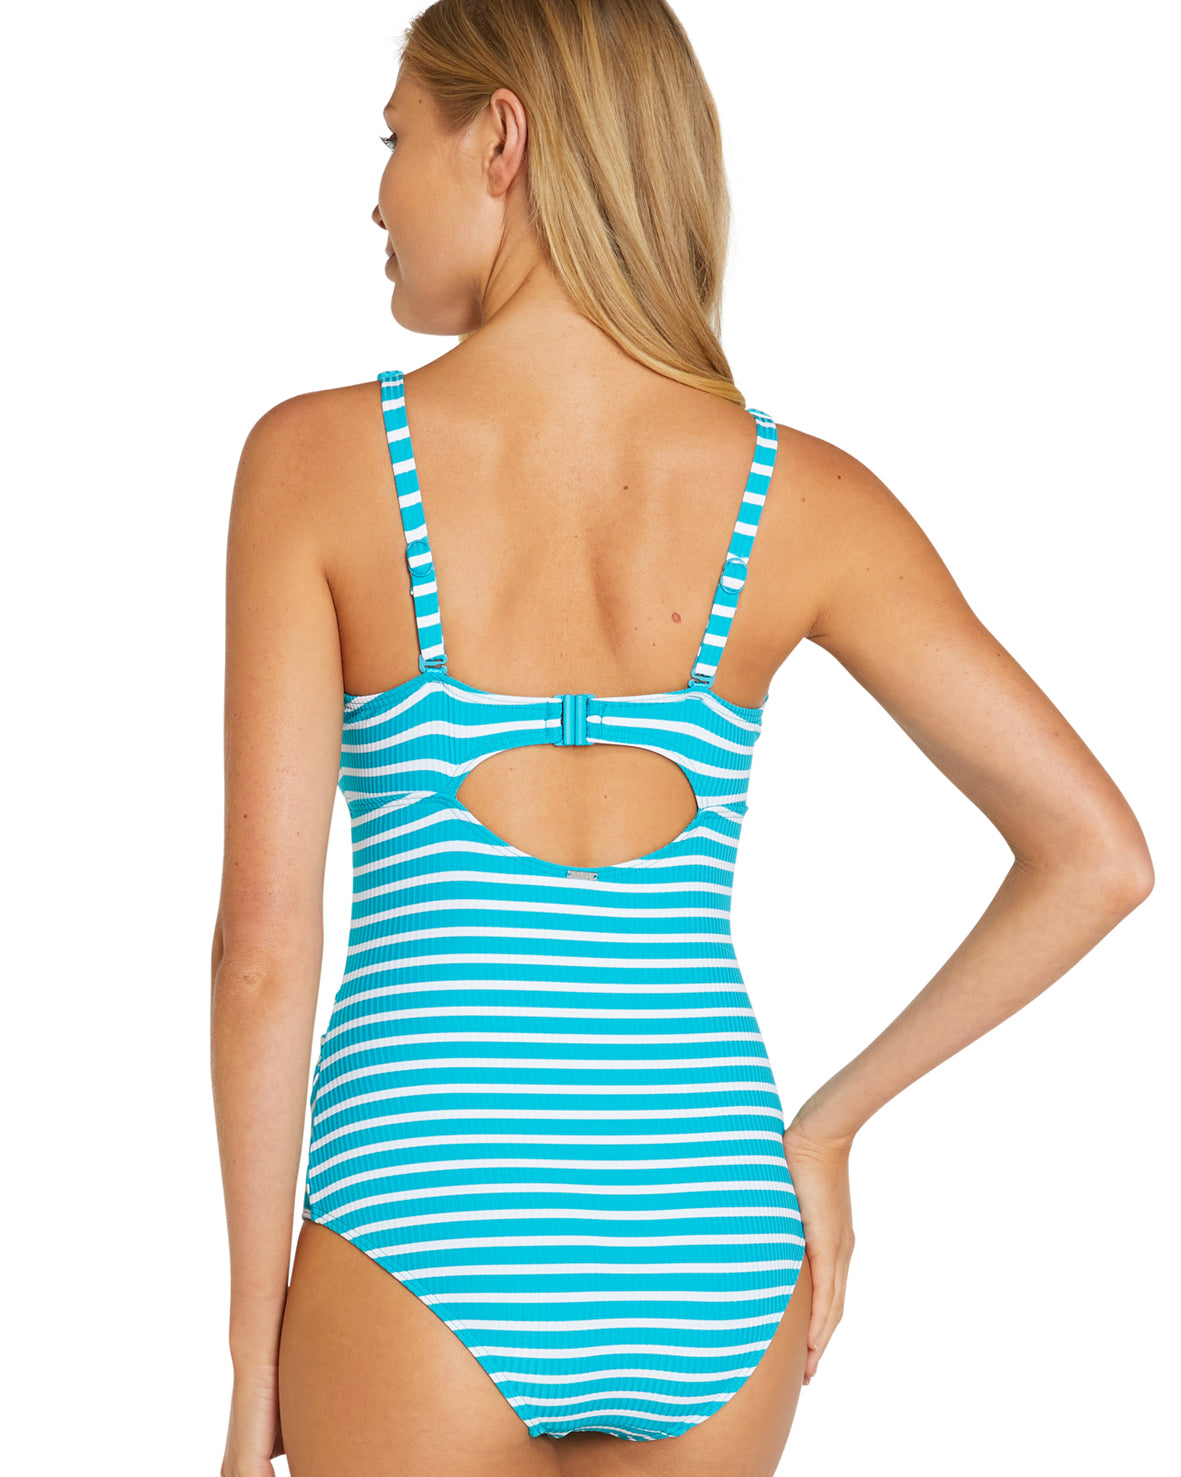 PORTOFINO BOOSTER ONE PIECE SWIMSUIT